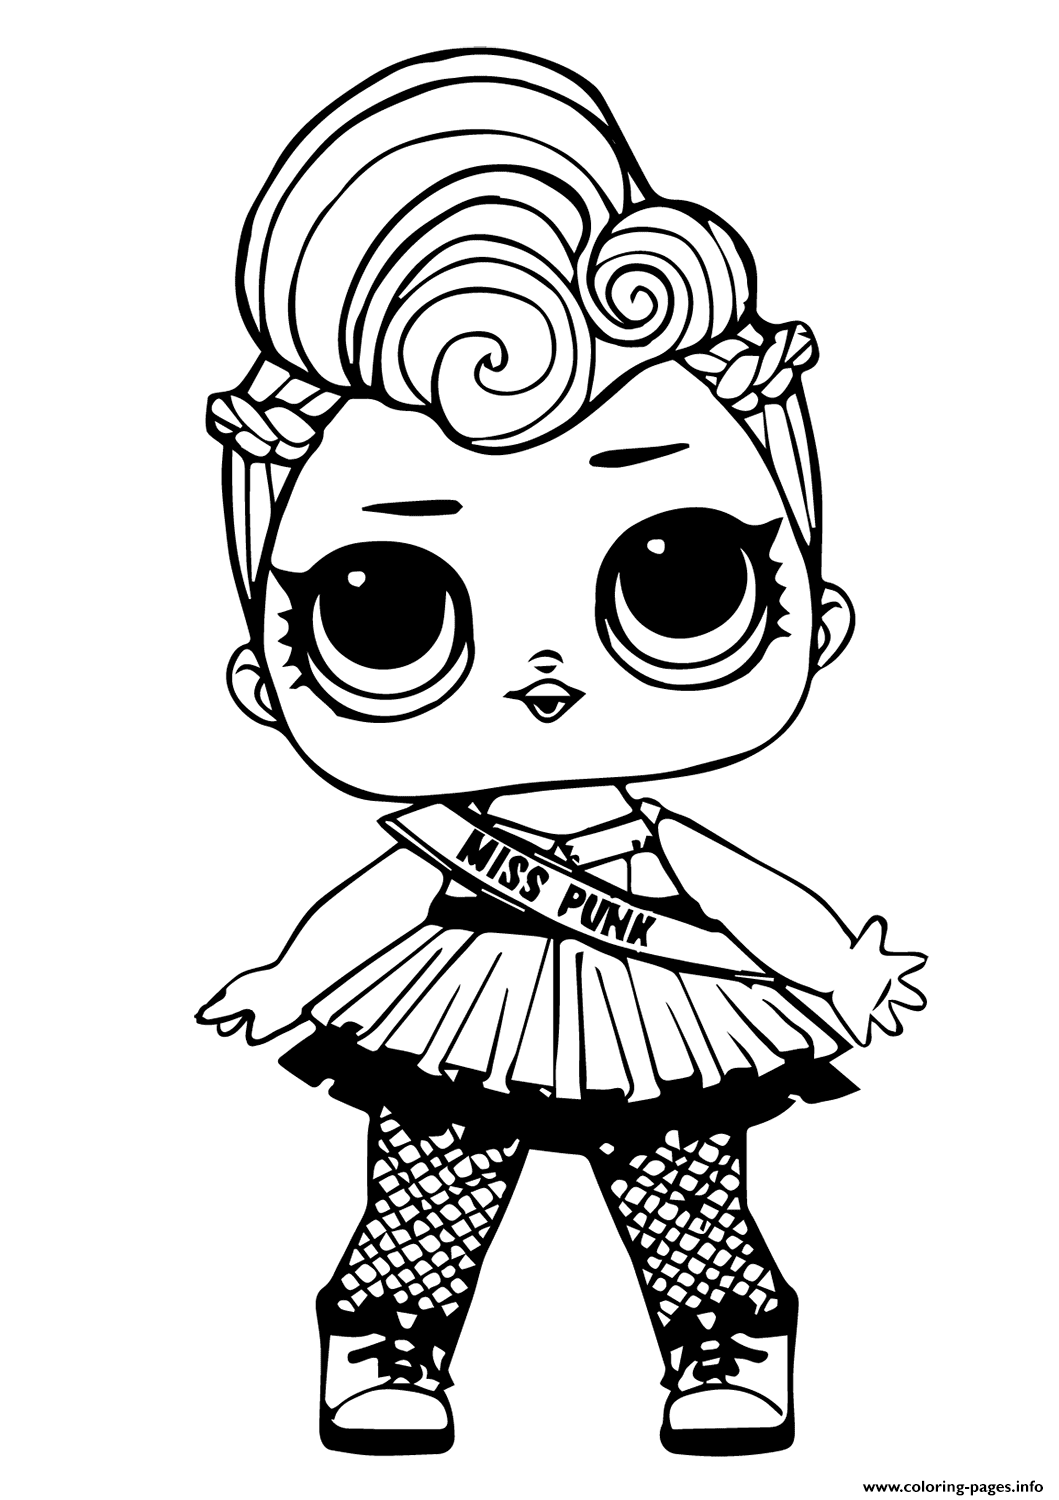 photo regarding Lol Doll Printable named Lol Doll Miss out on Punk Coloring Web pages Printable